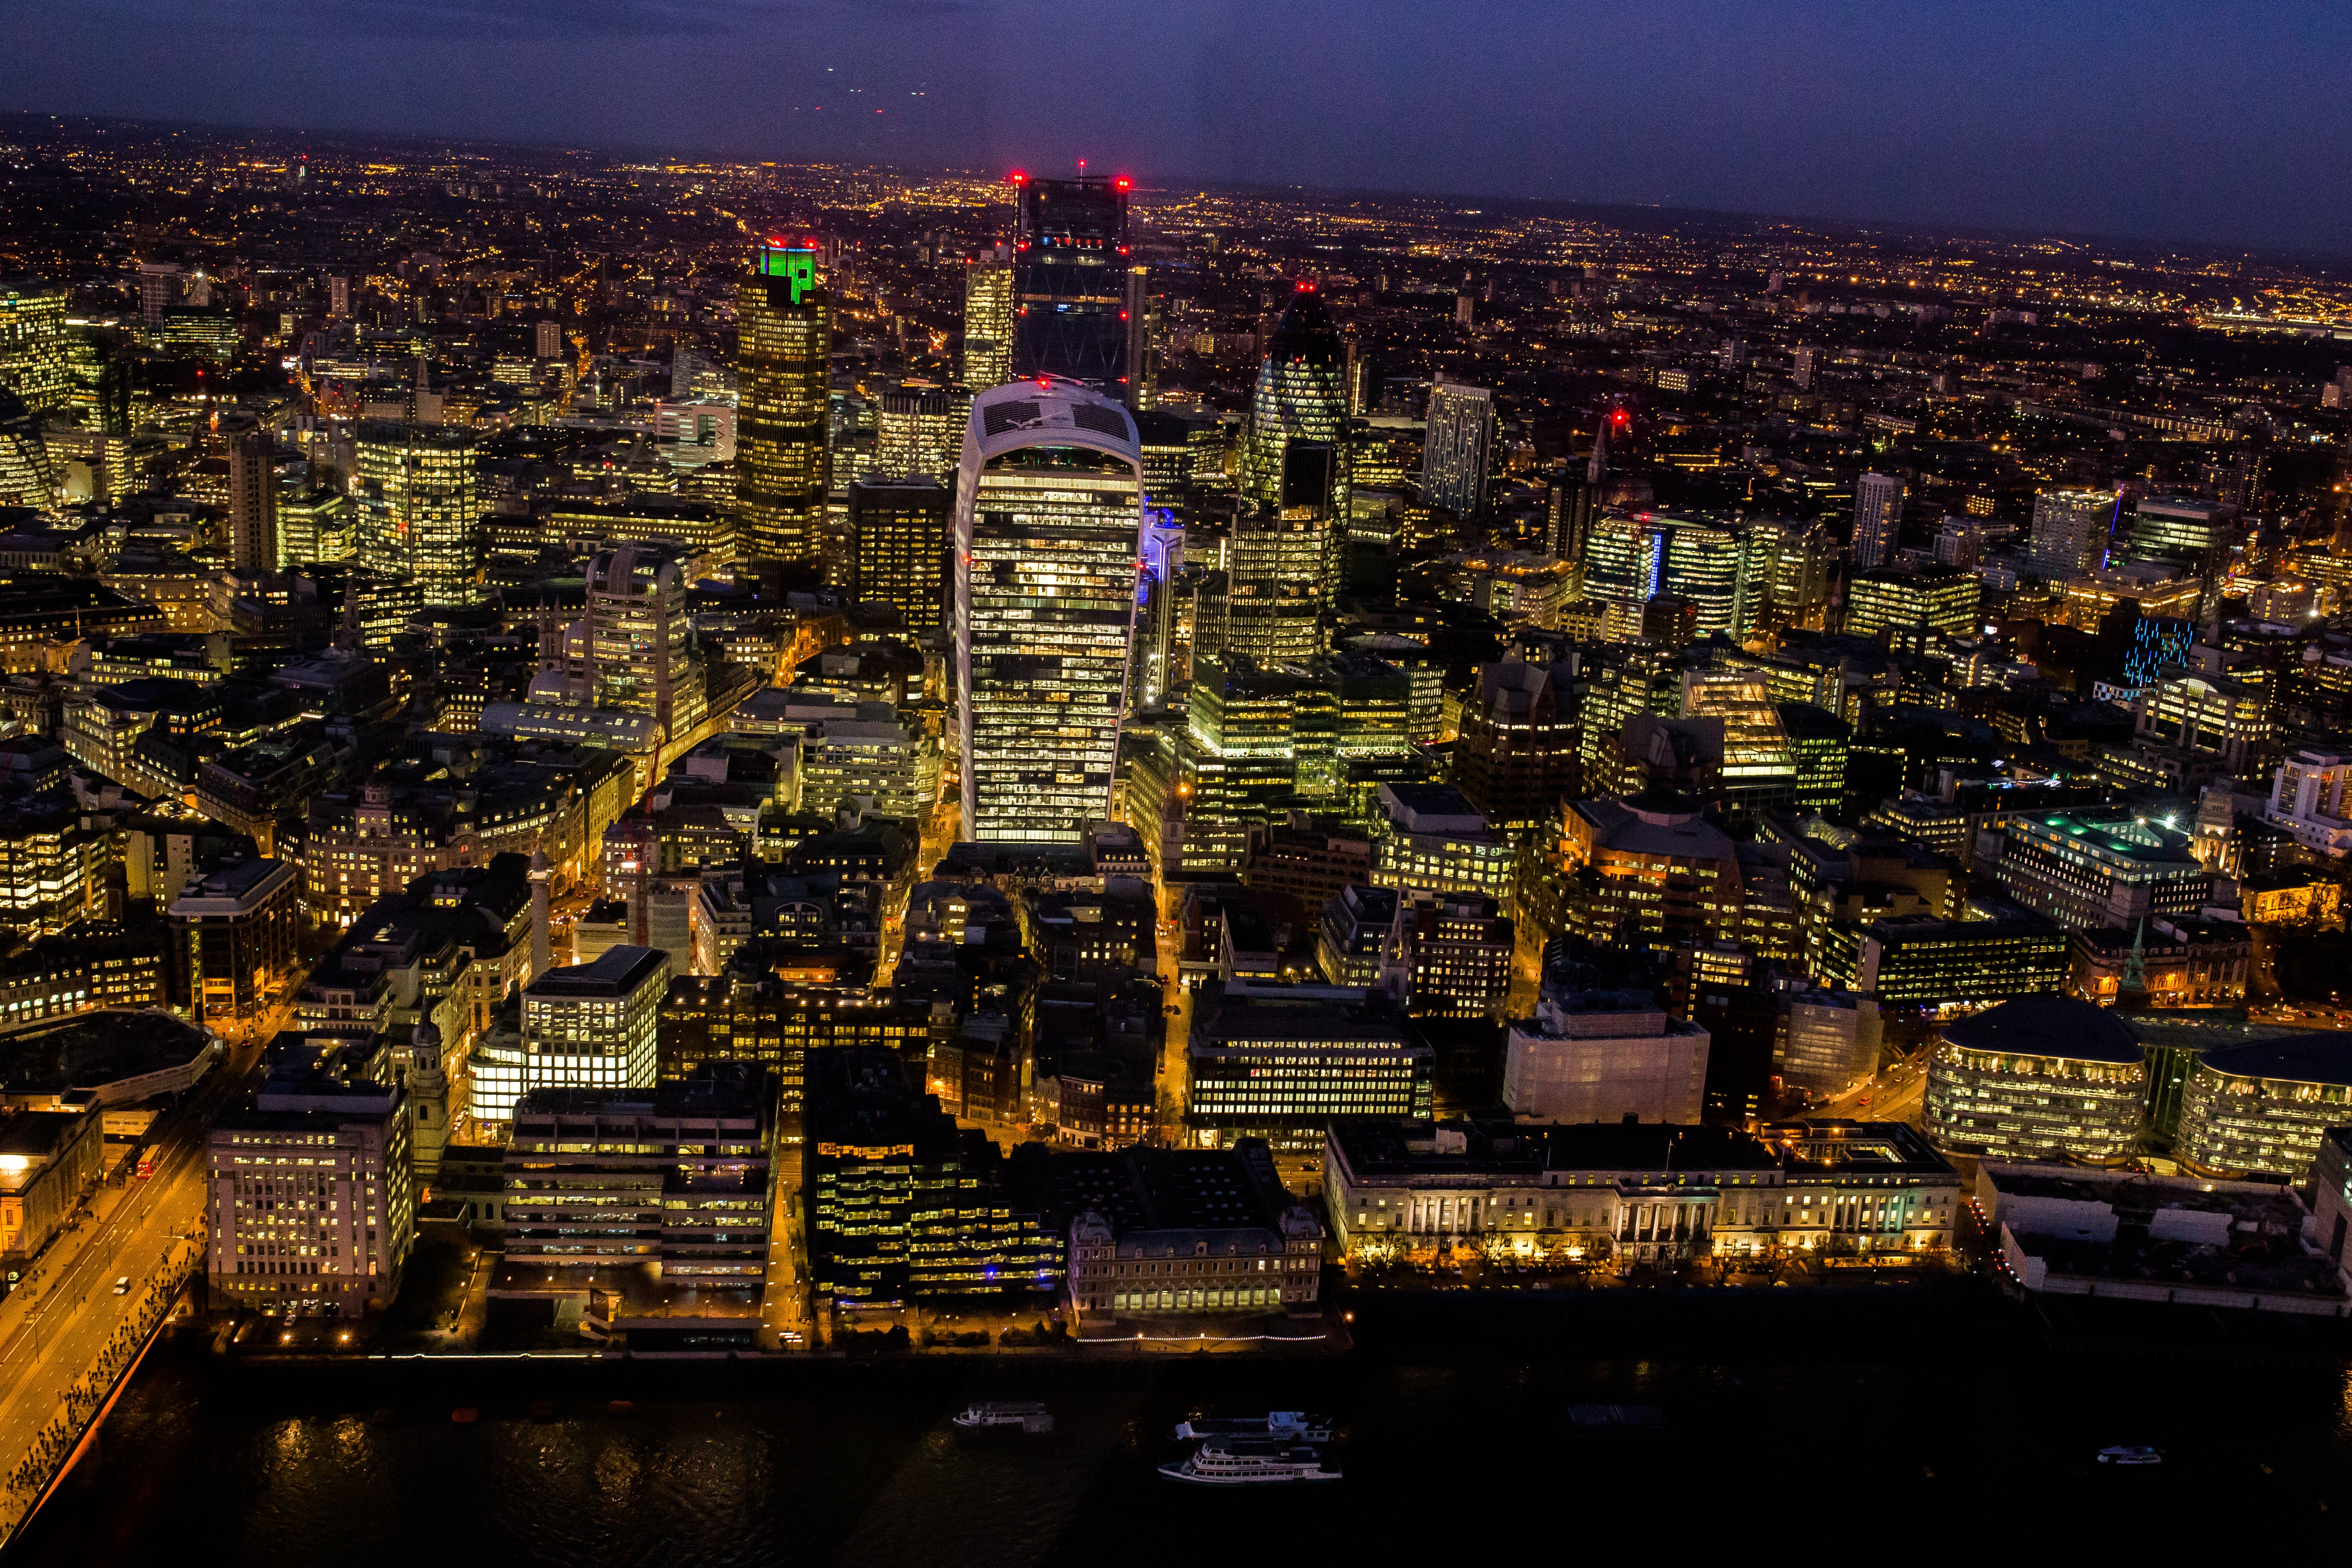 Aerial Photography of City Escape at Night